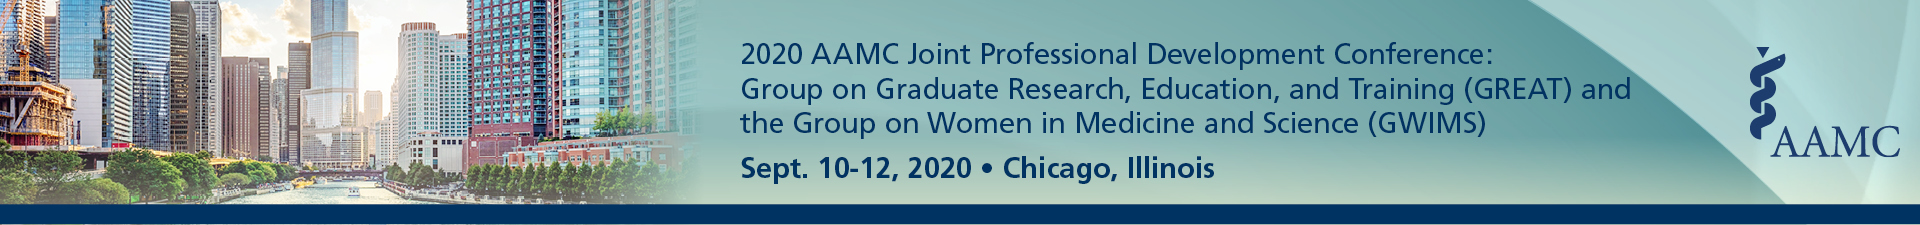 2020 AAMC GREAT and GWIMS Joint Professional Development Conference Event Banner